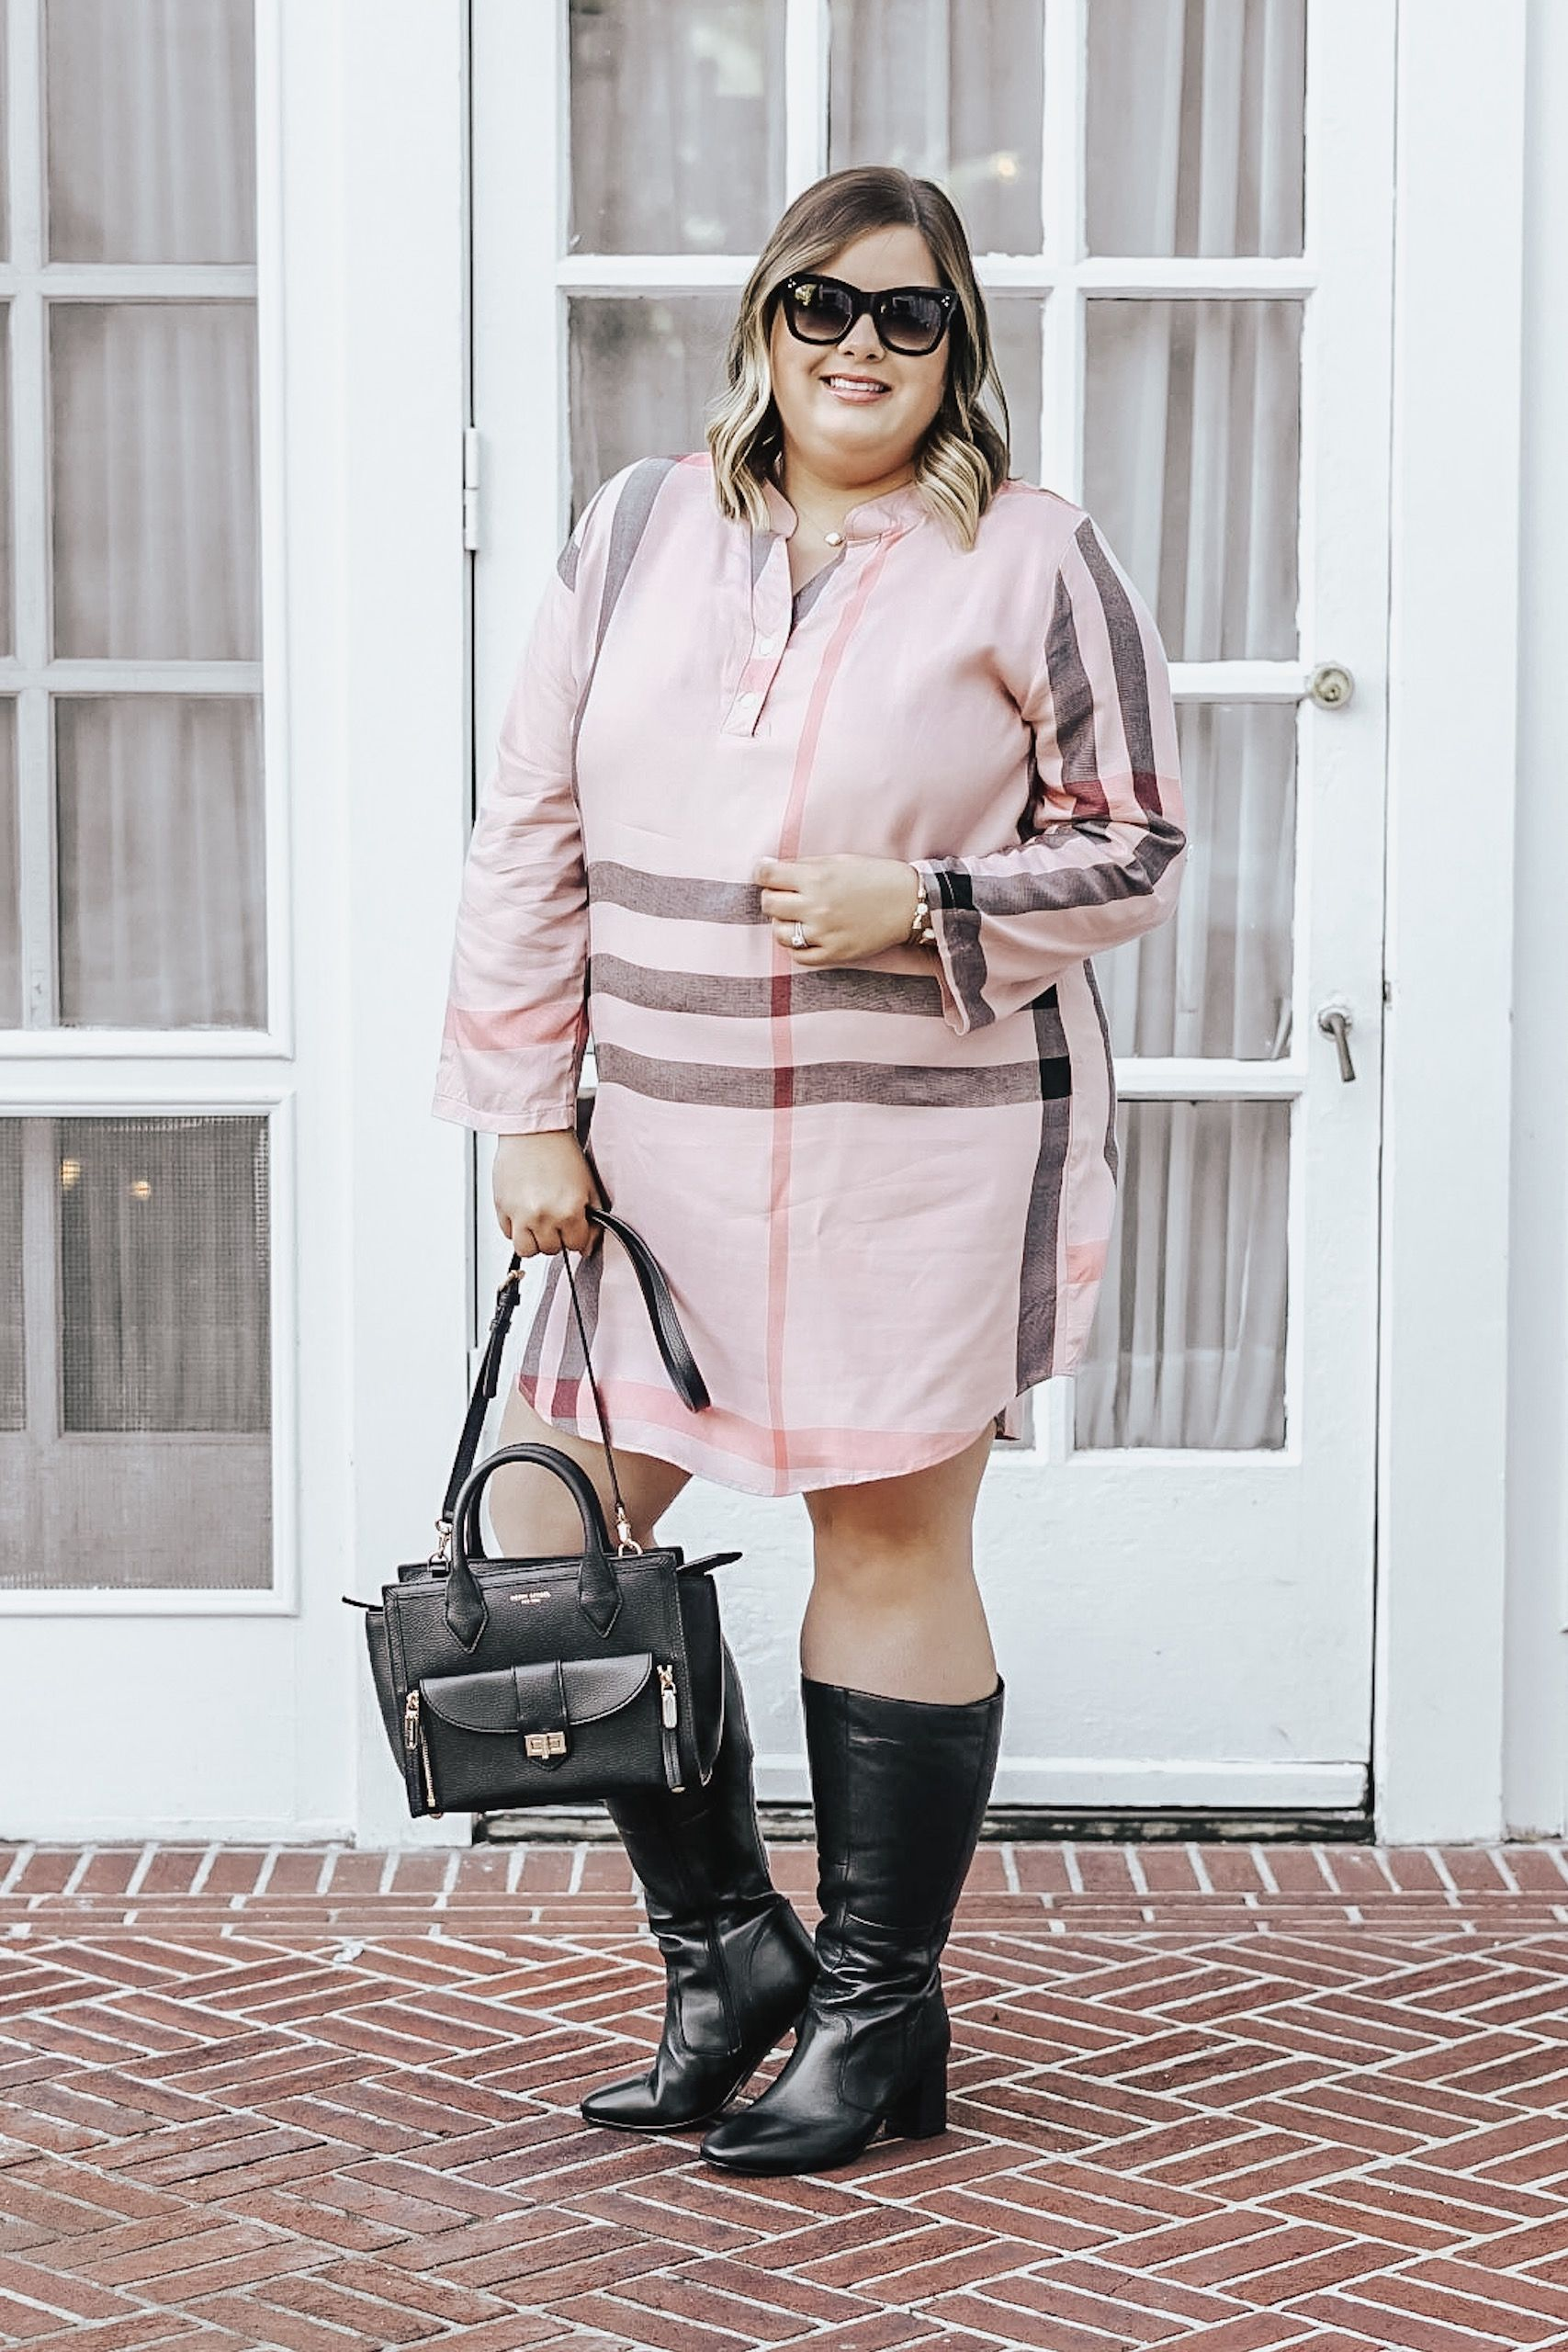 2a3bed4d8d1 Perfect Plus Size Plaid Shirt Dress For Fall from Amaryllis boutique.  Burberry knock off plaid shirt dress.  plussizefashion  plussize   plussizeclothing ...